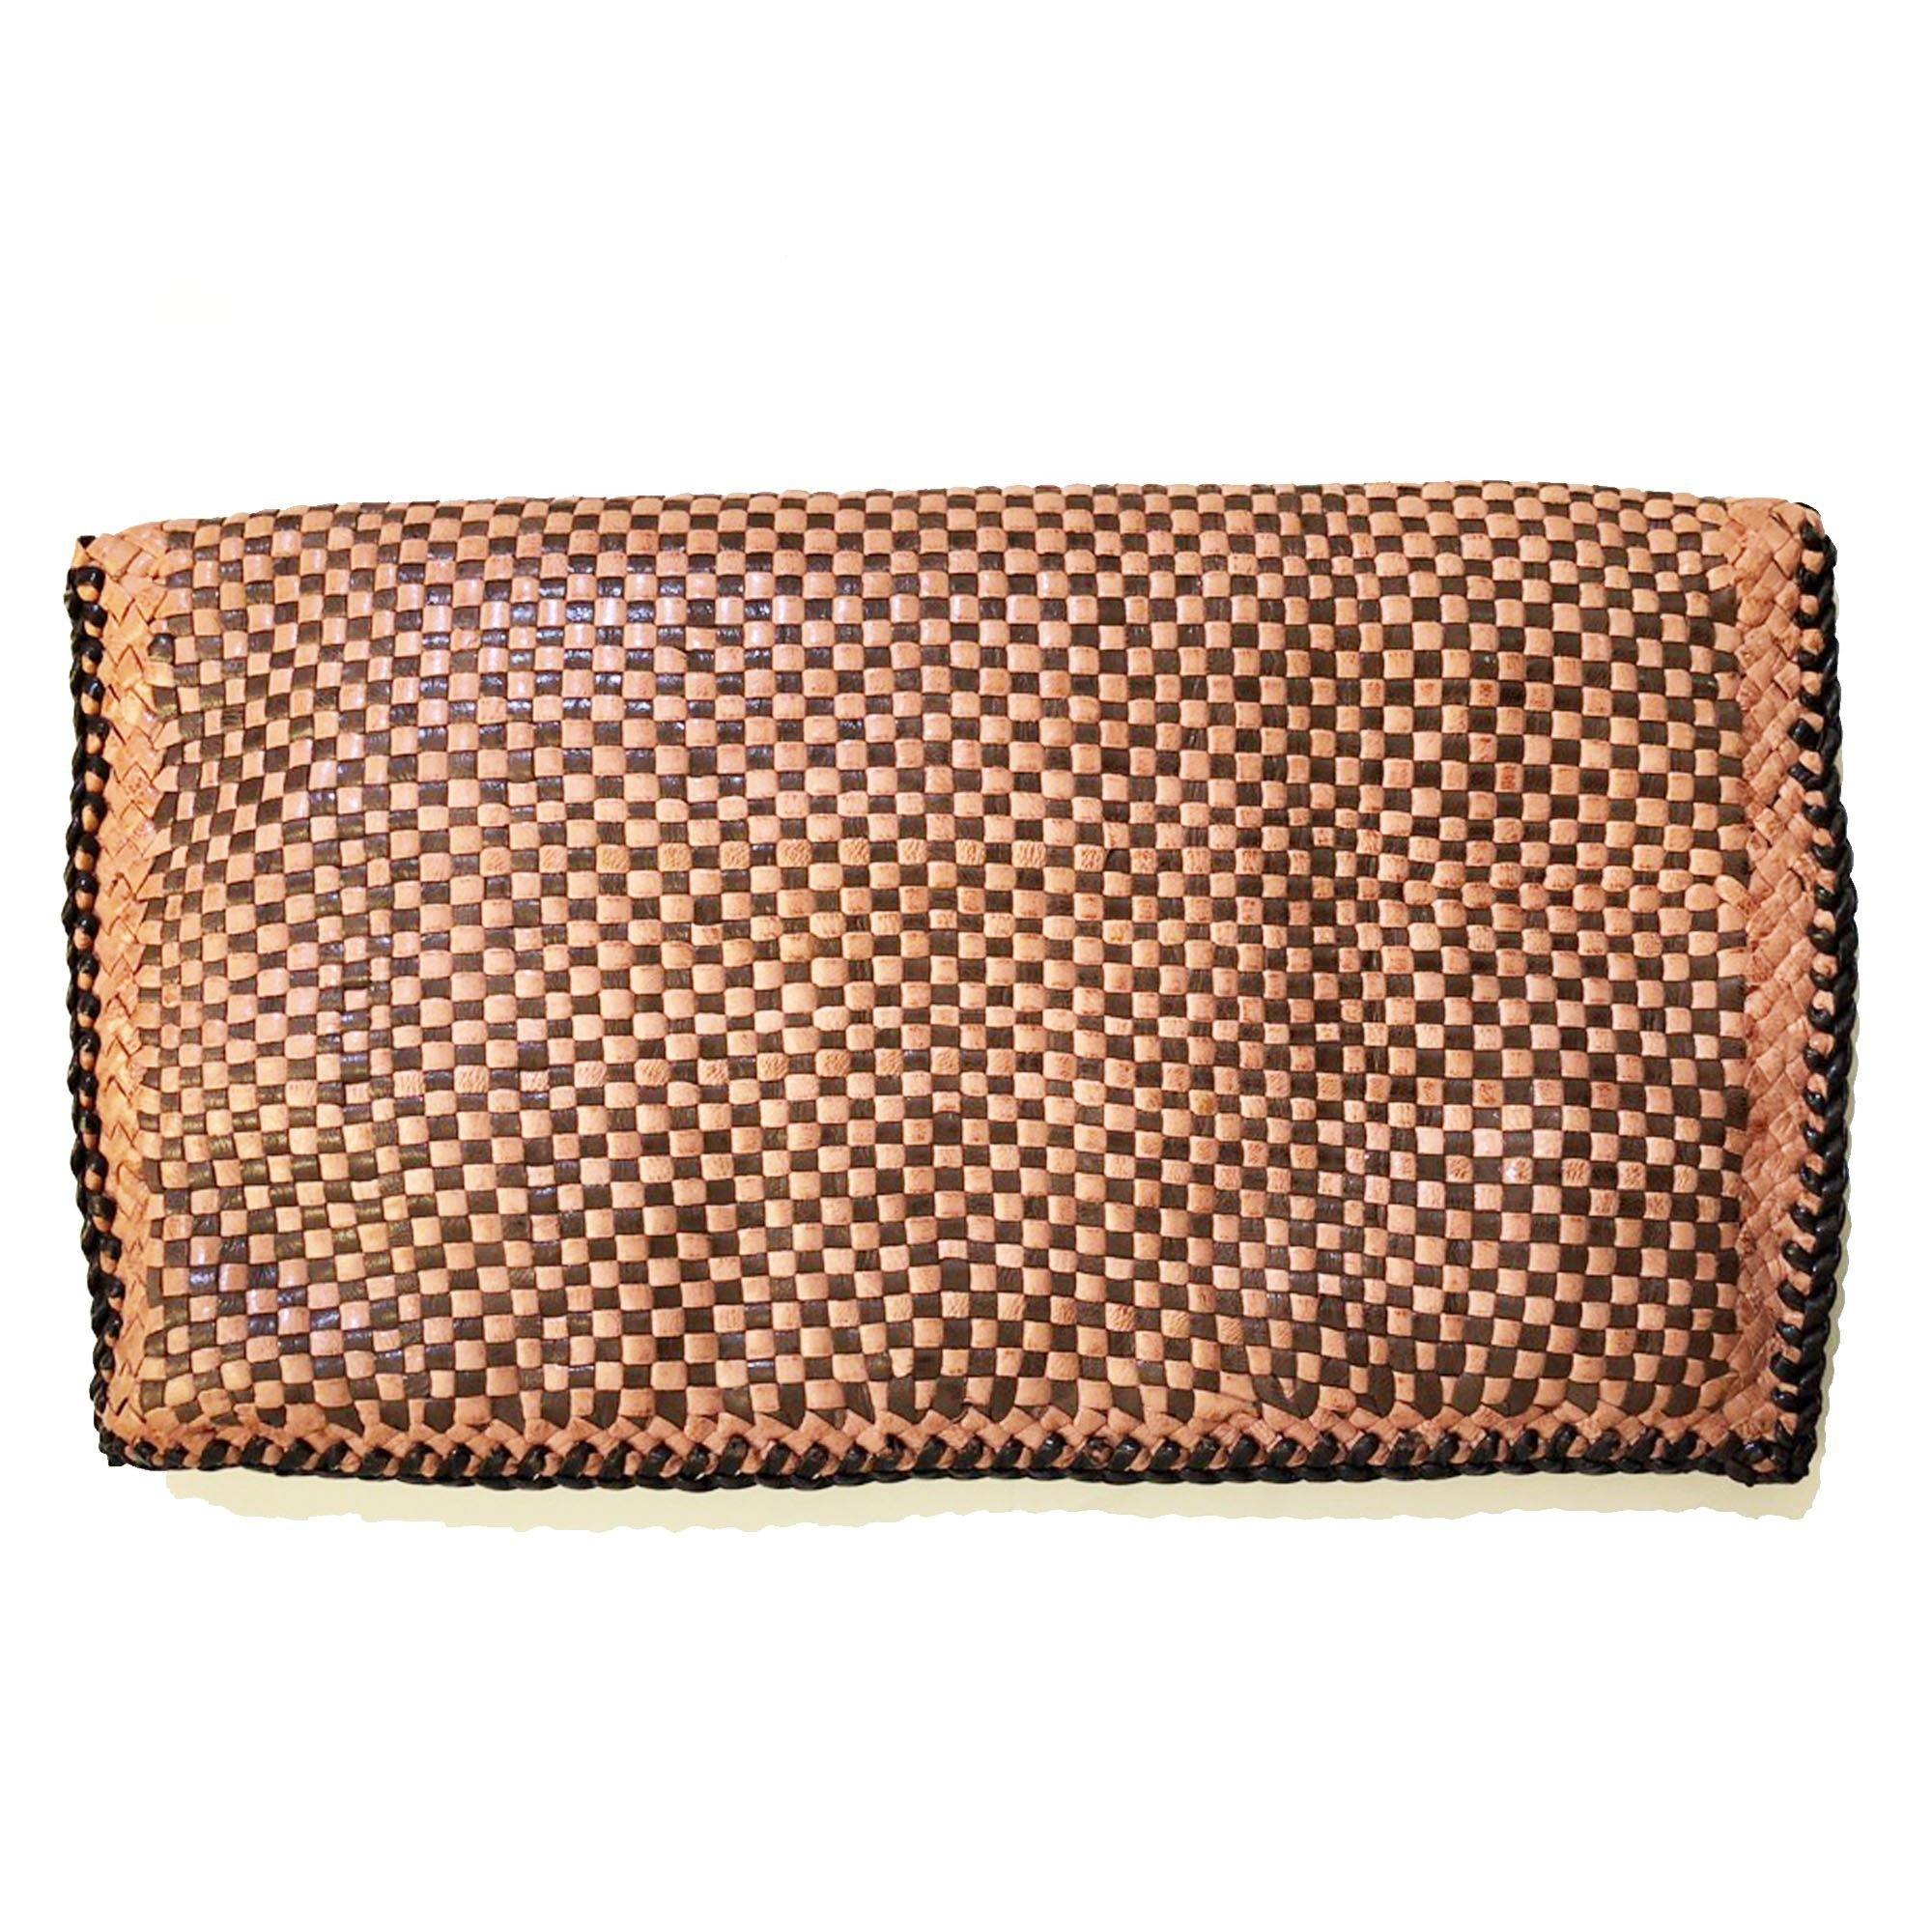 Prada Petalo/Caffe Woven Madras Goatskin Leather Clutch Bag